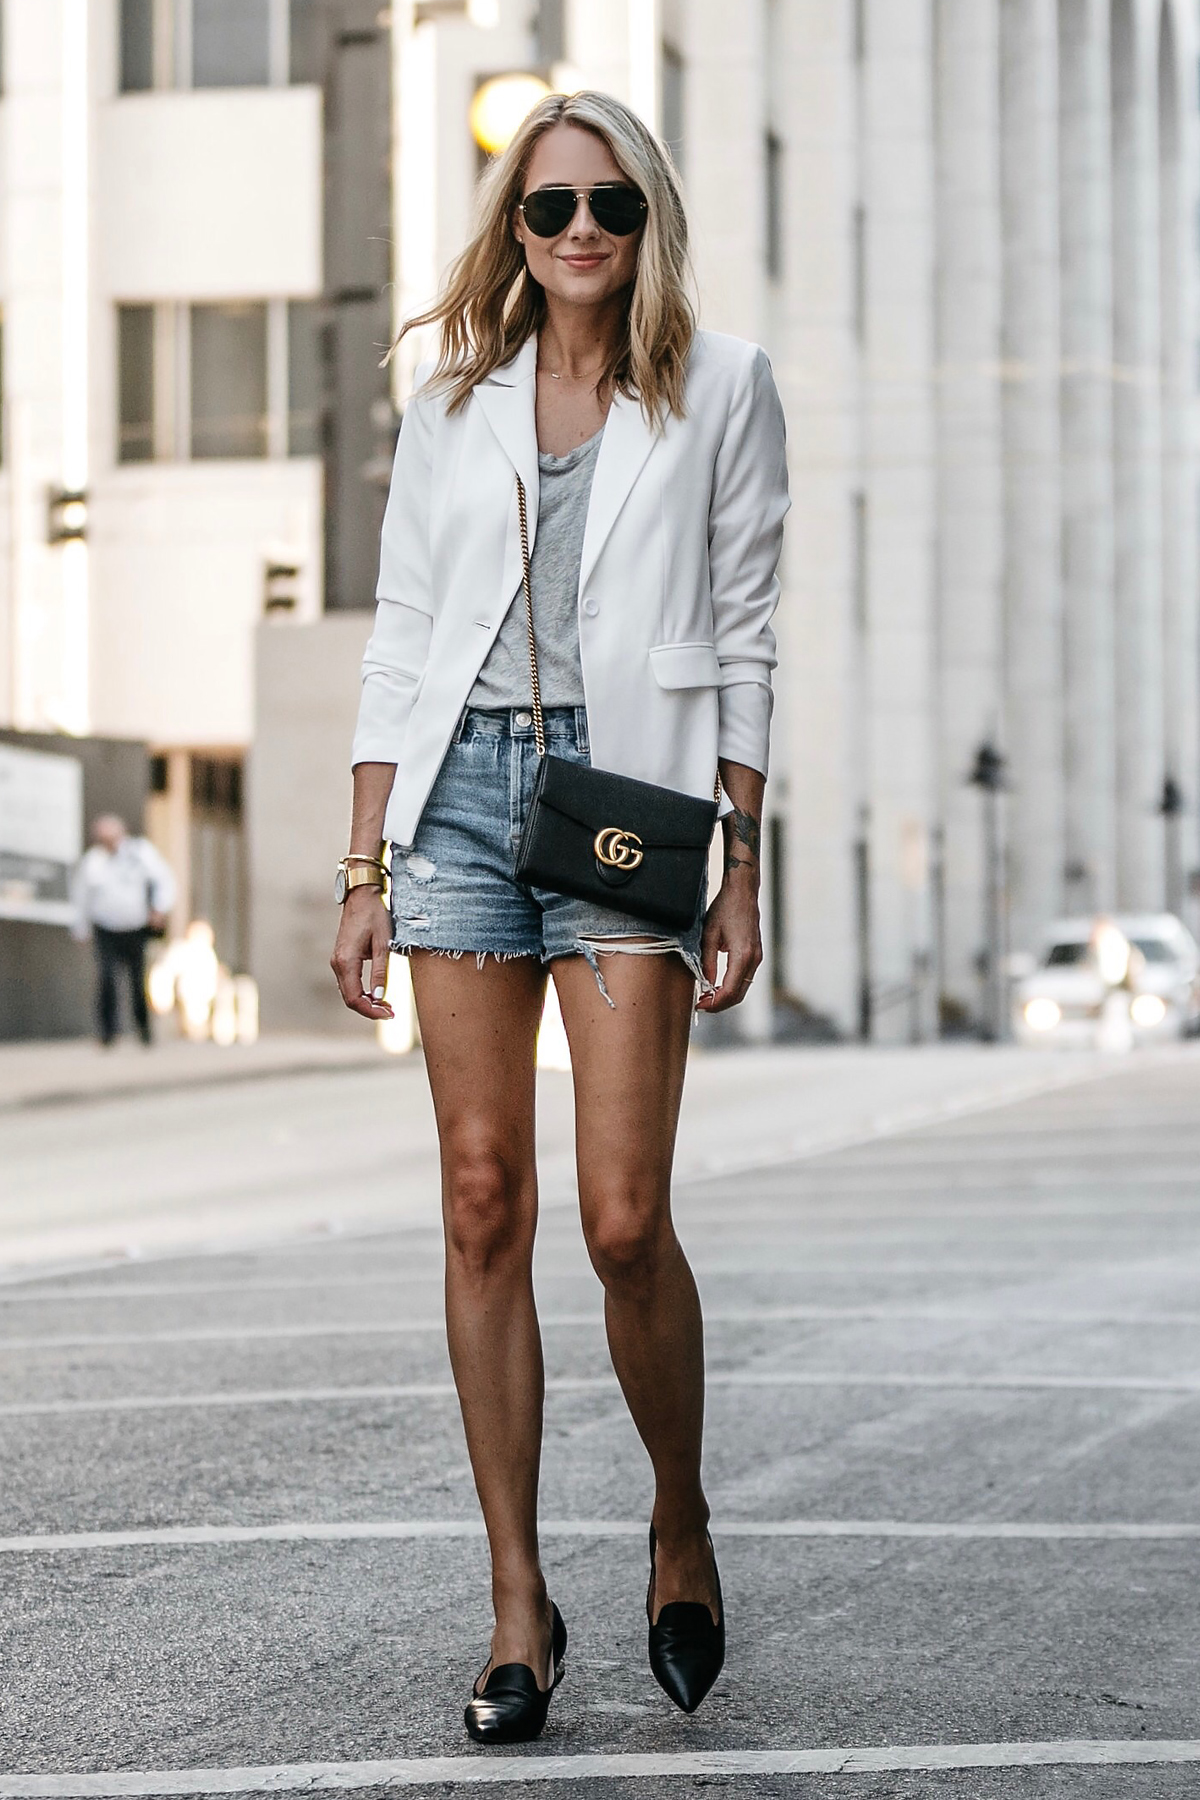 Blonde Woman Wearing Nordstrom White Blazer Everlane Grey Tshirt Topshop Ripped Denim Shorts Outfit Gucci Marmont Handbag Black Loafers Fashion Jackson Dallas Blogger Fashion Blogger Street Style